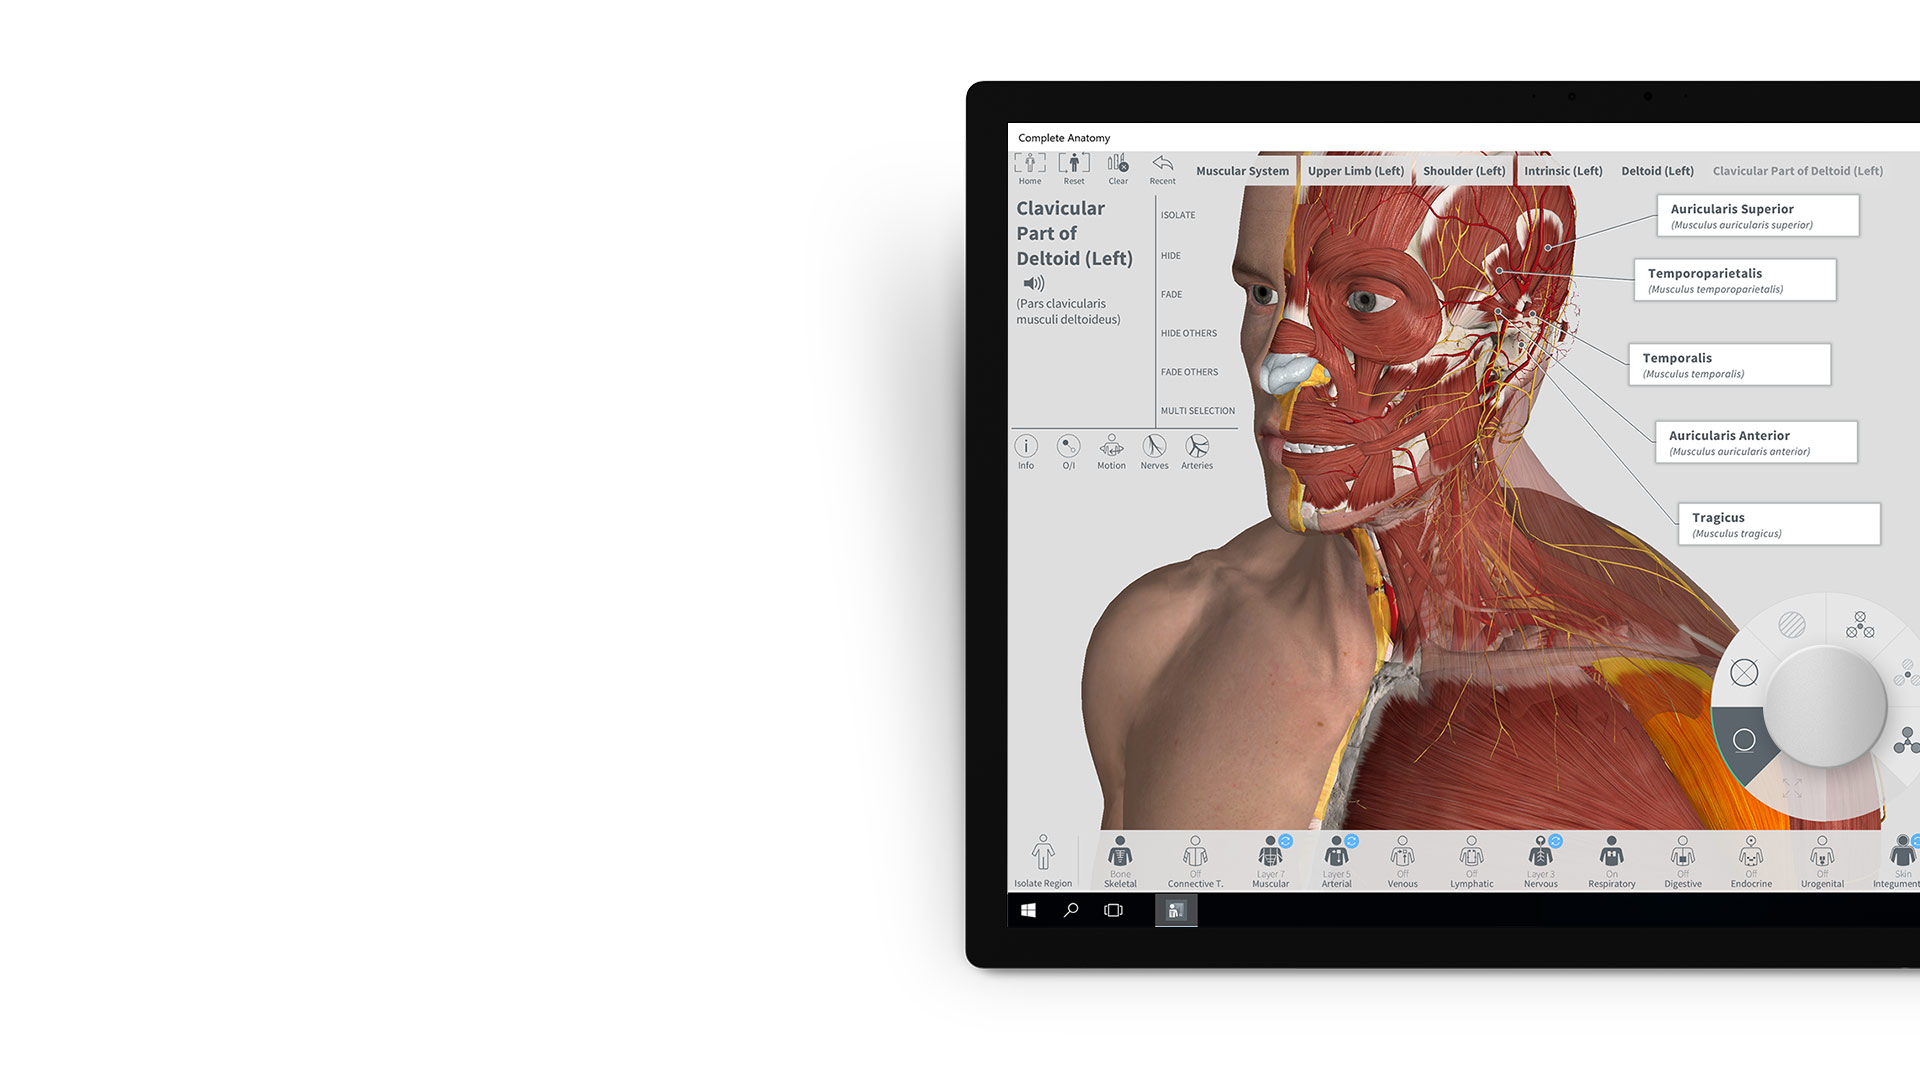 Image de l'application Complete Anatomy sur Surface.